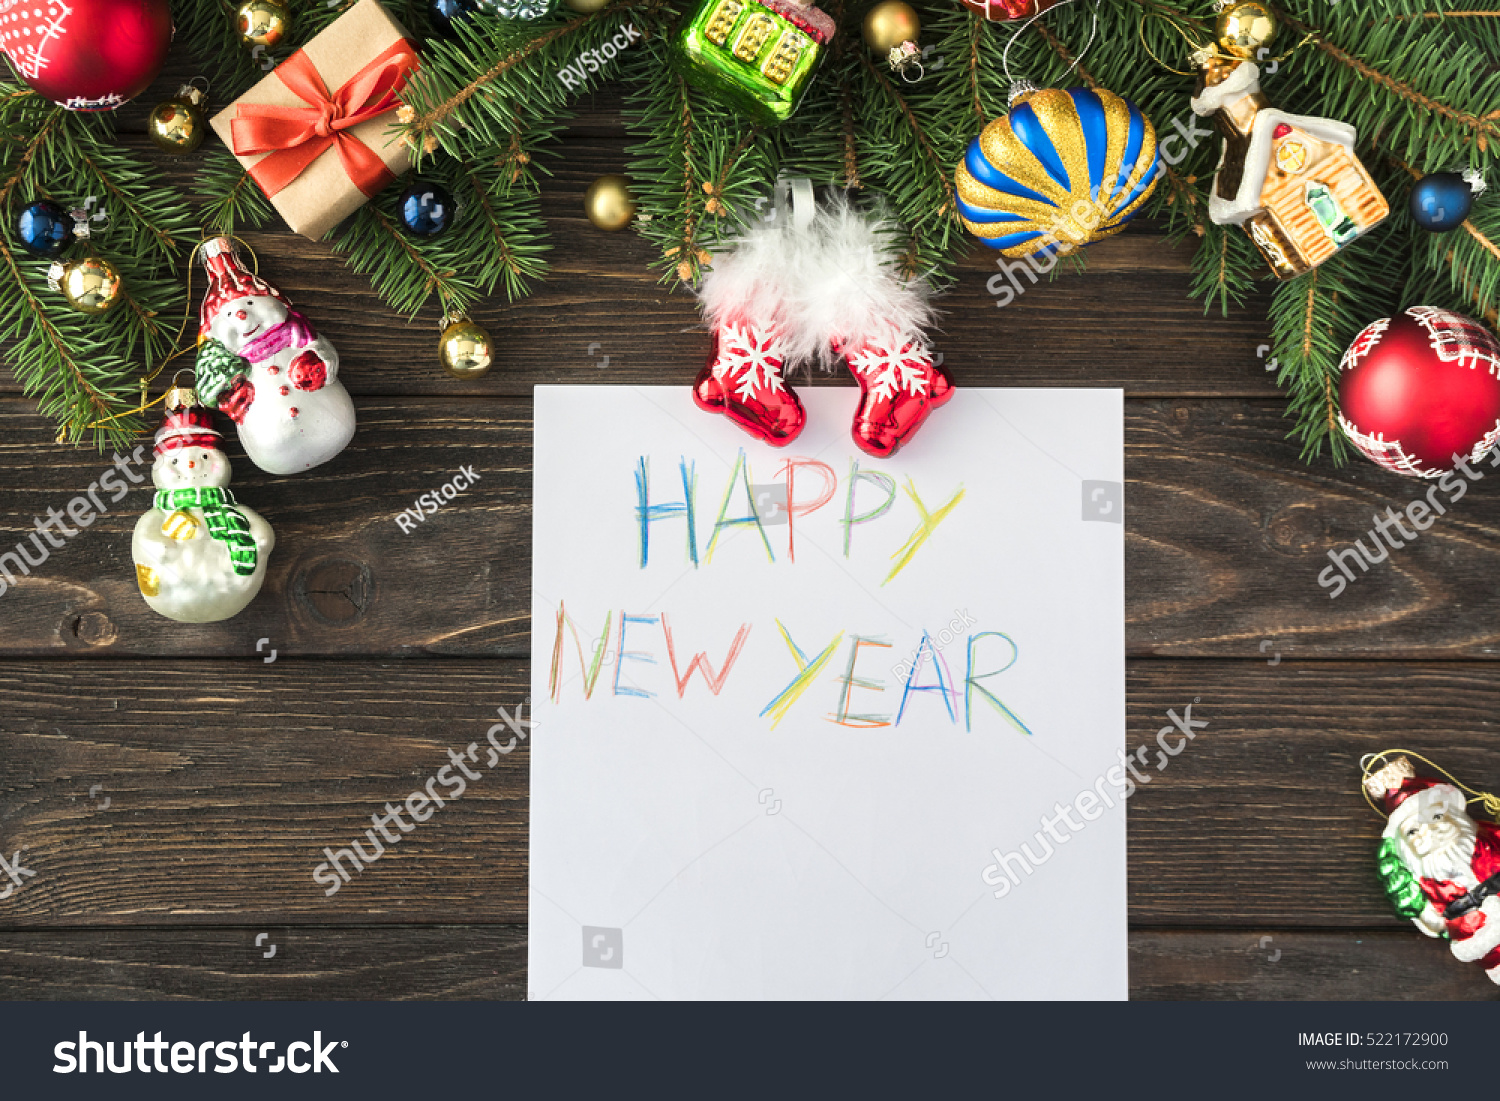 colorful new year decoration - photo #27